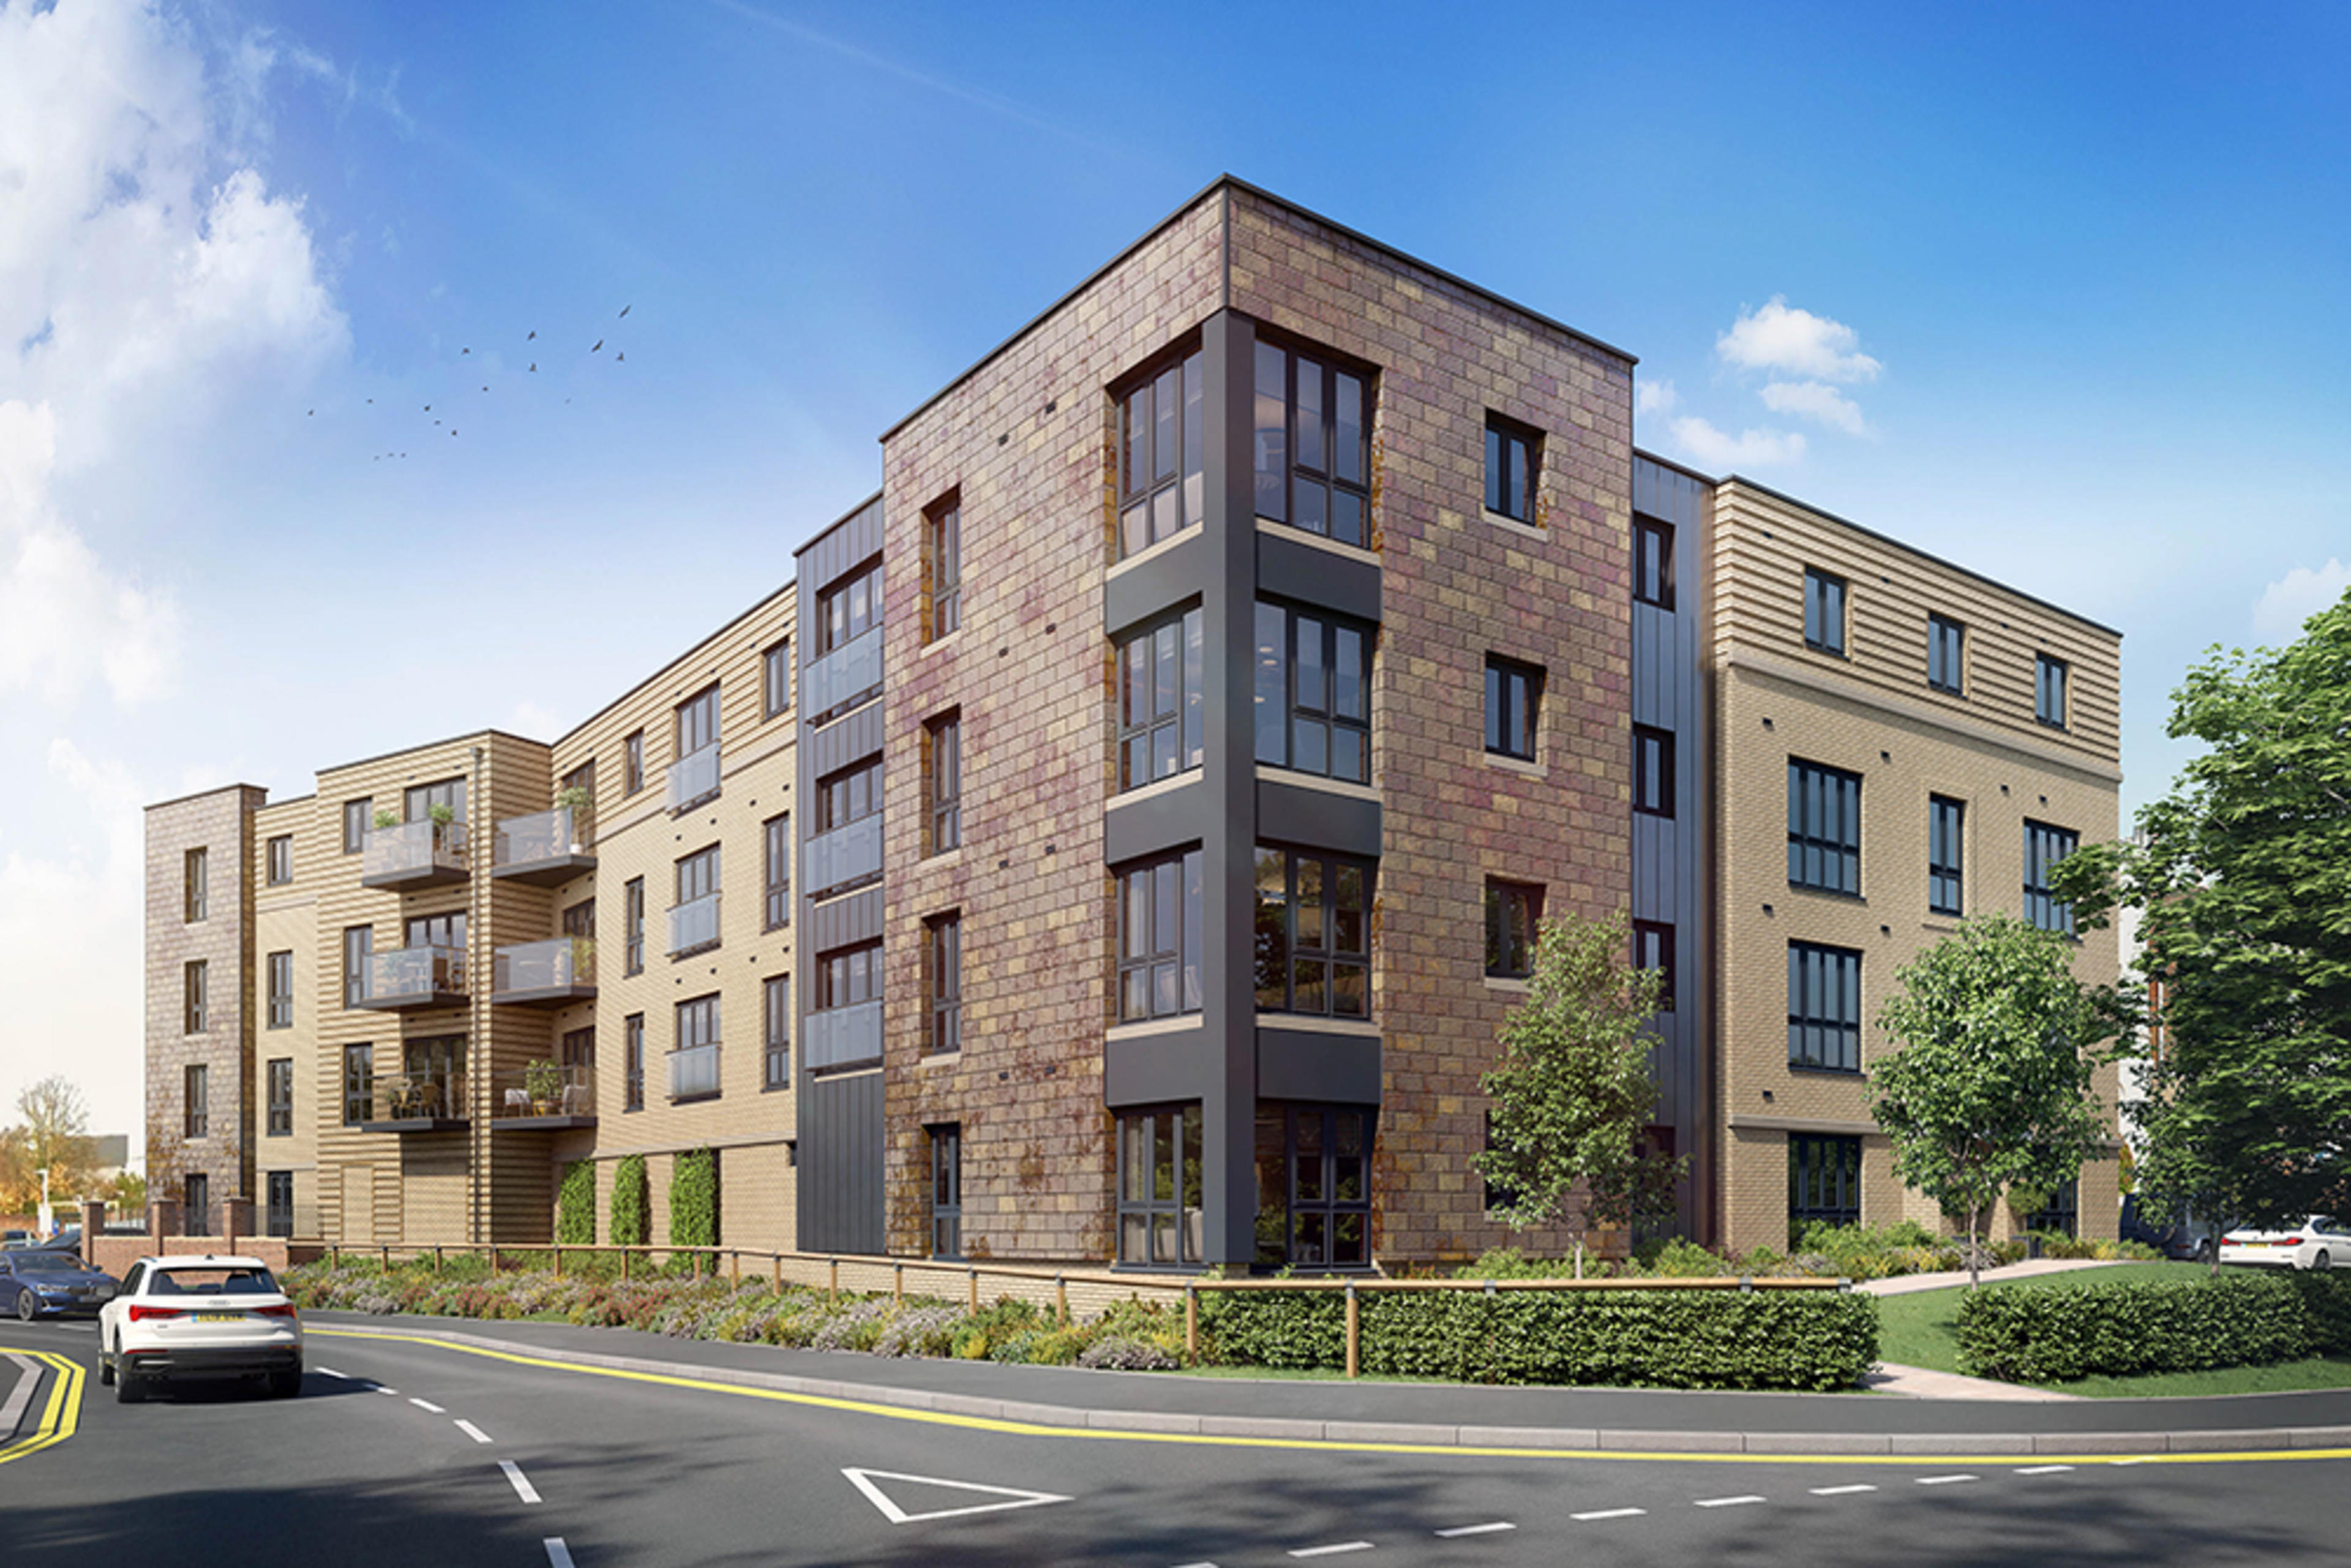 CGI-external-Bowlers Court-Chelmsford-Springfield Road-01-LR